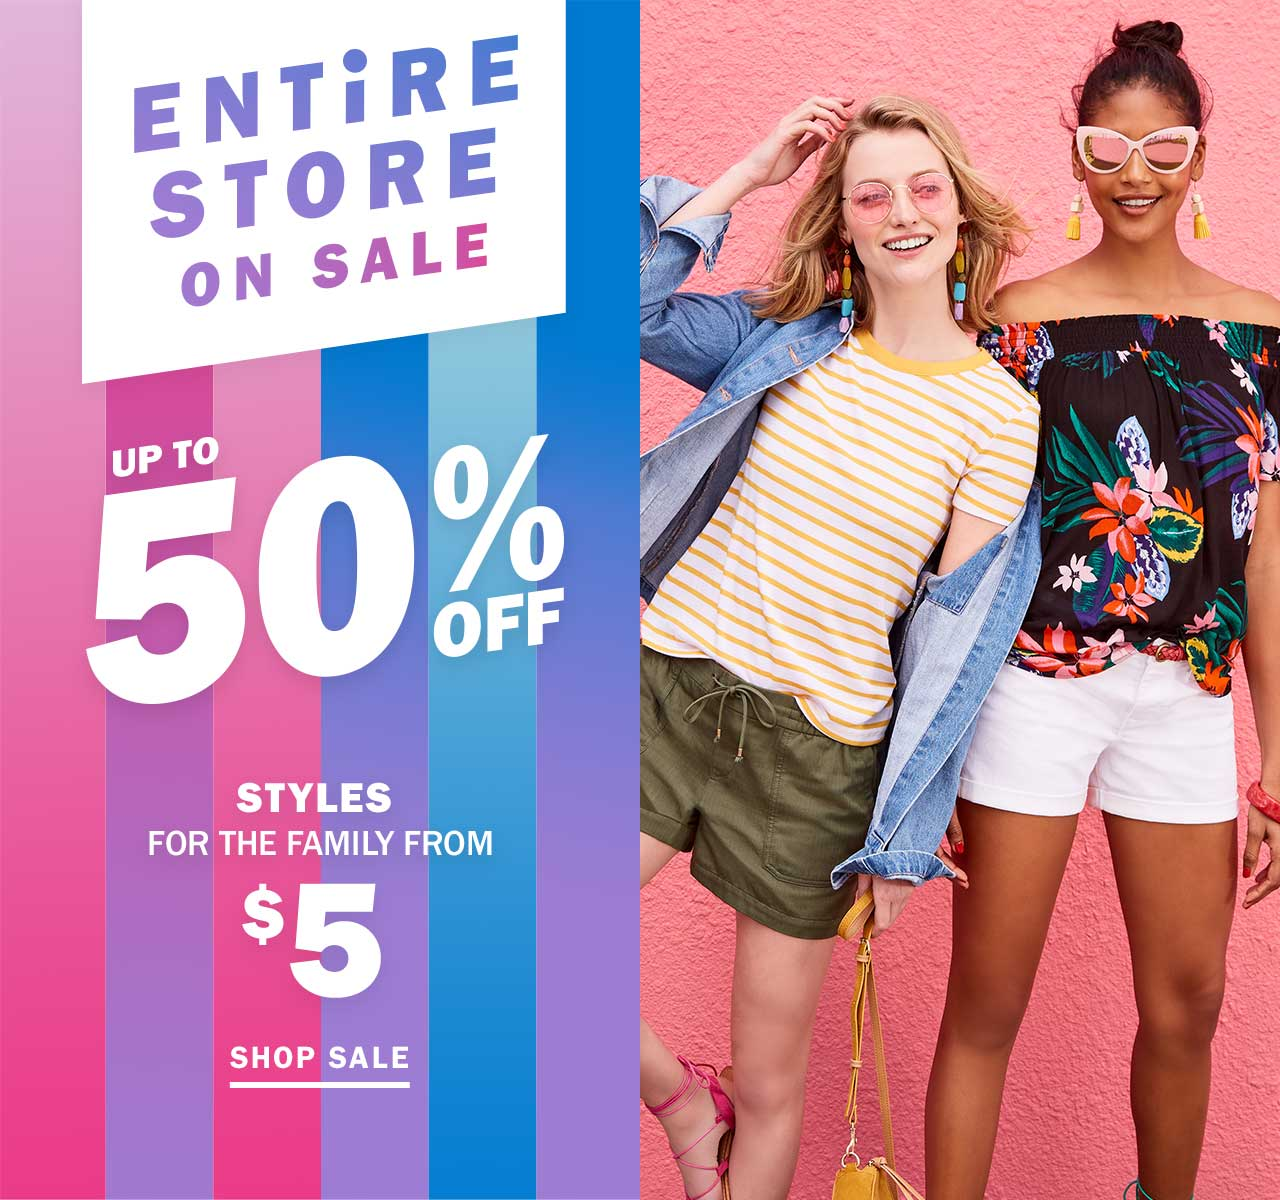 ENTiRE STORE ON SALE | UP TO 50% OFF